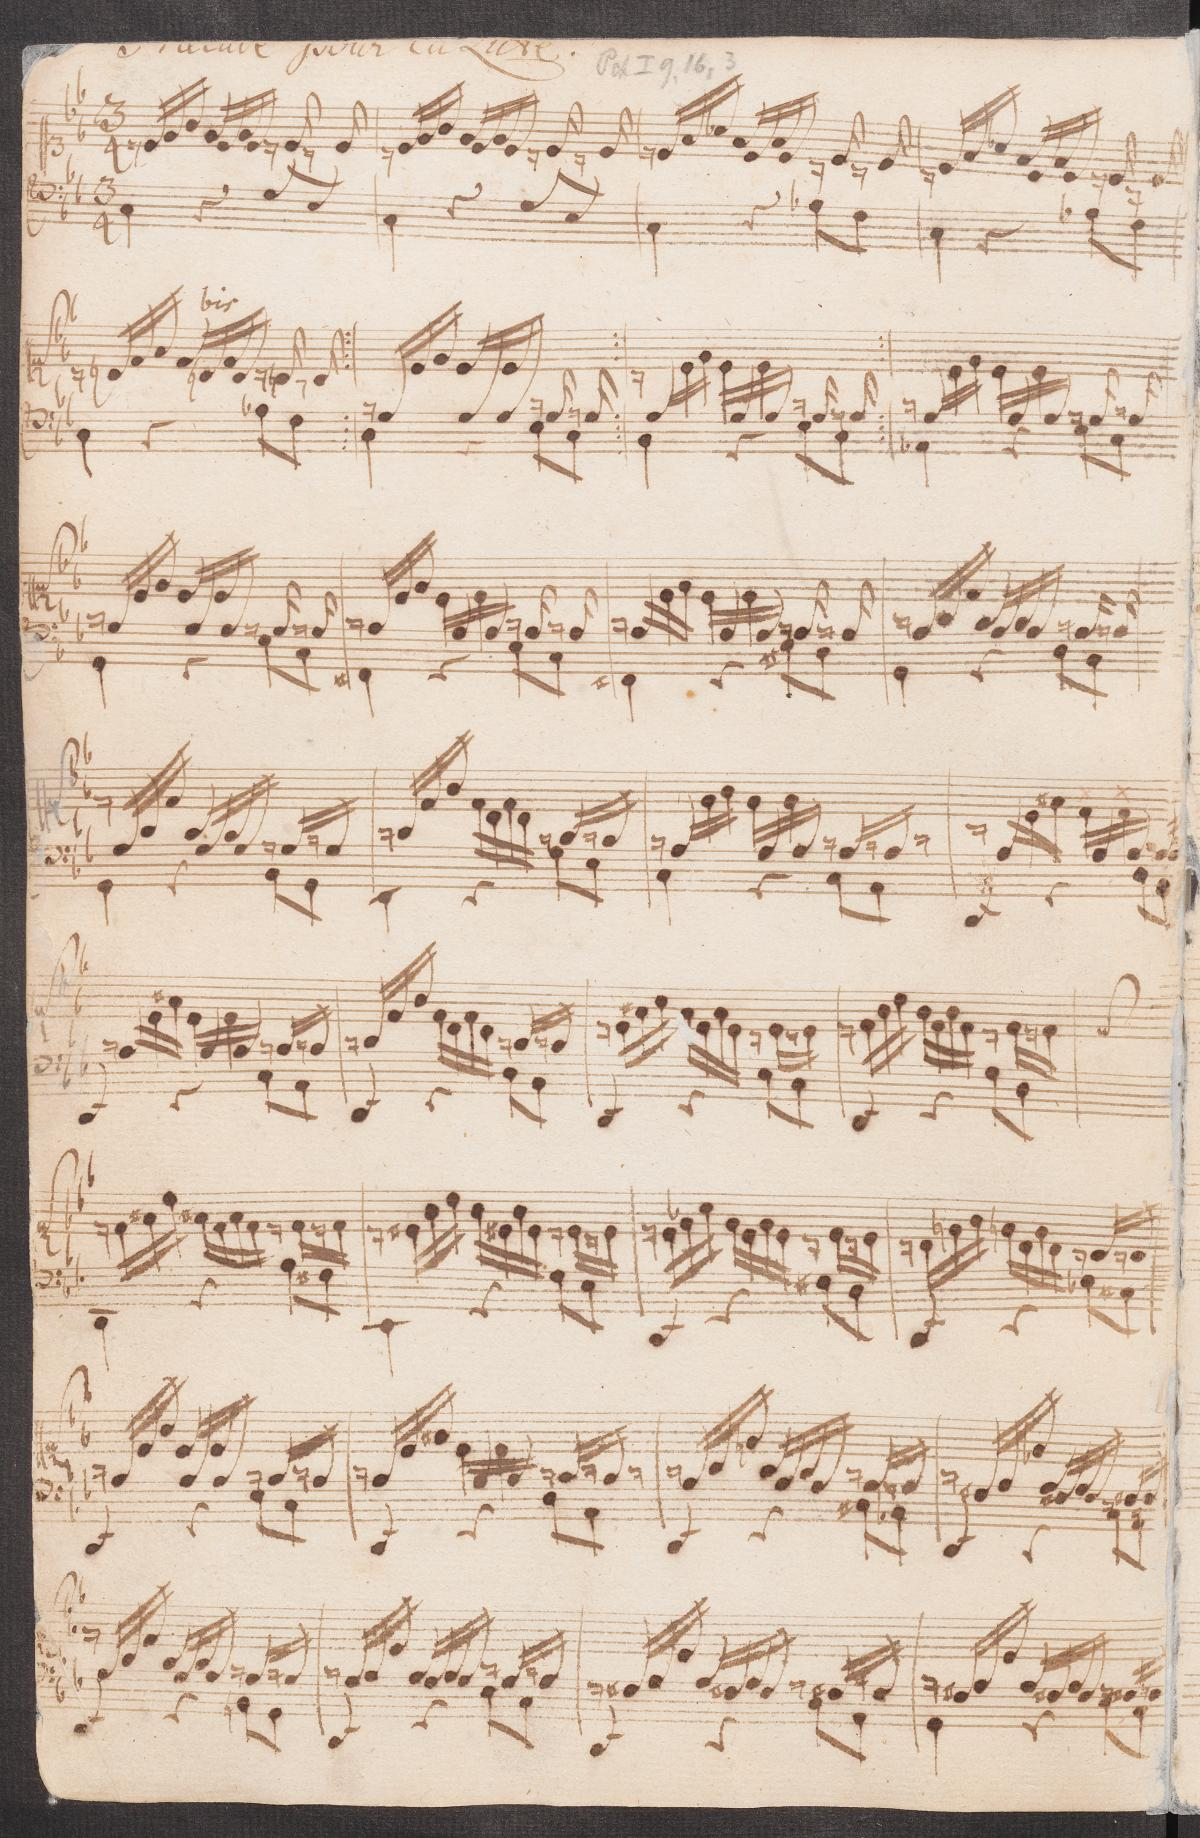 Johann Sebastian Bach Bach - Stuttgarter Kammerorchester The Stuttgart Chamber Orchestra Suite No. 2 In B Minor For Flute Strings And Continuo · Suite No. 3 In D Major For Oboes Trumpets Drums Strings And Continuo